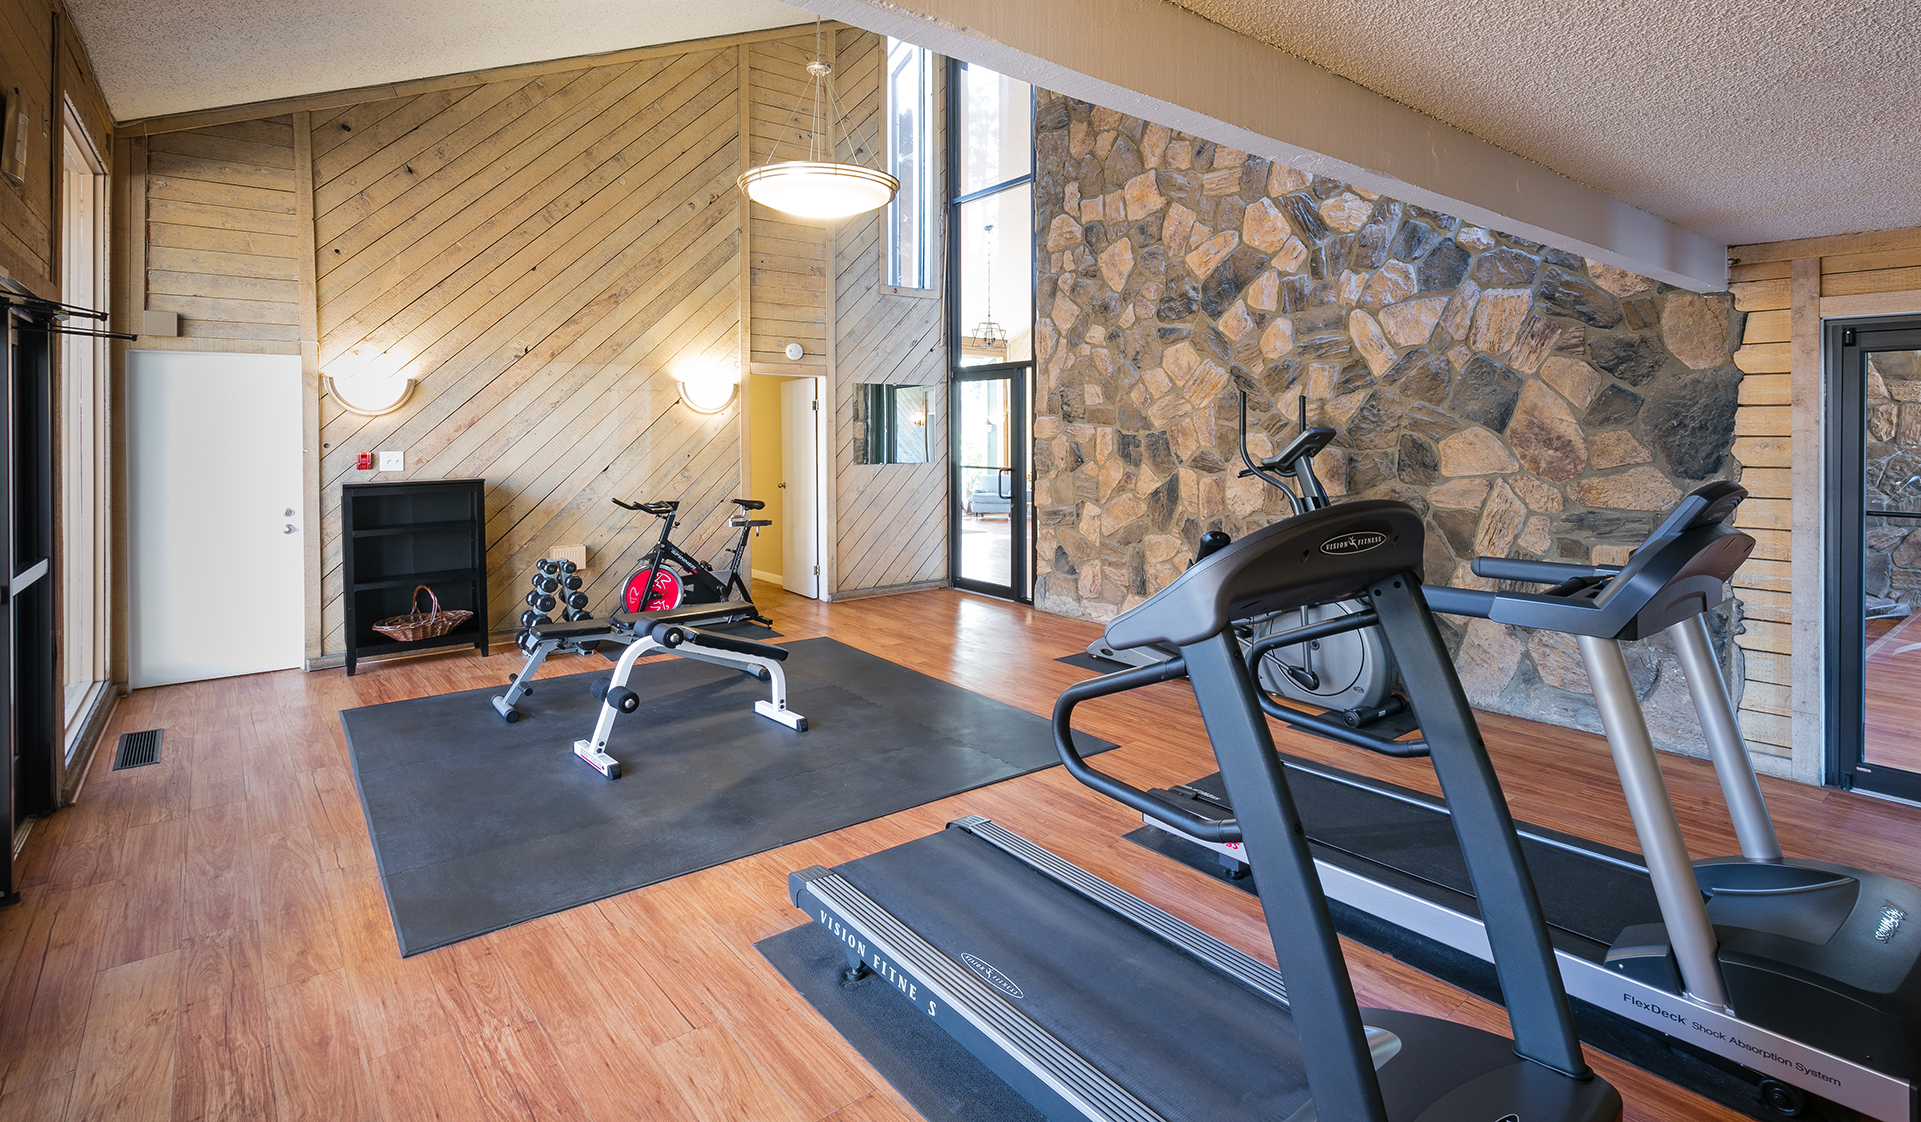 Creekside Apt Homes - Fitness Center